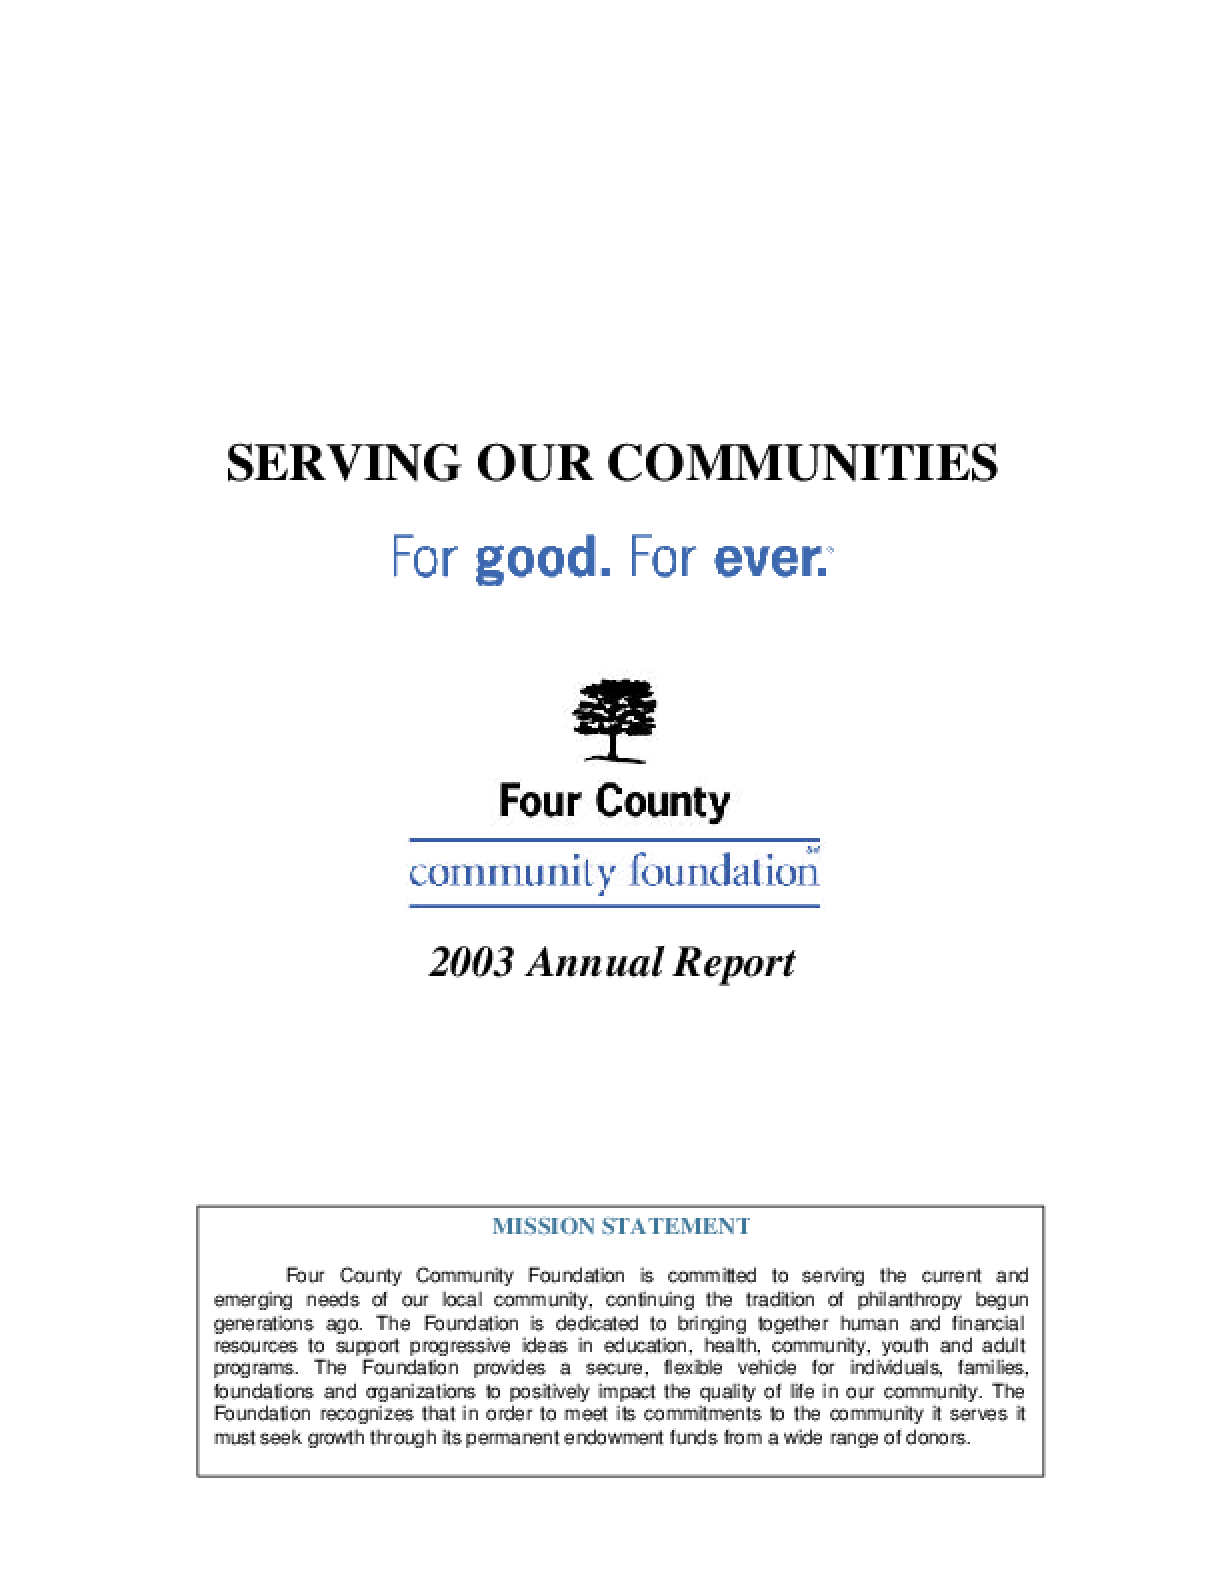 Four County Community Foundation - 2003 Annual Report